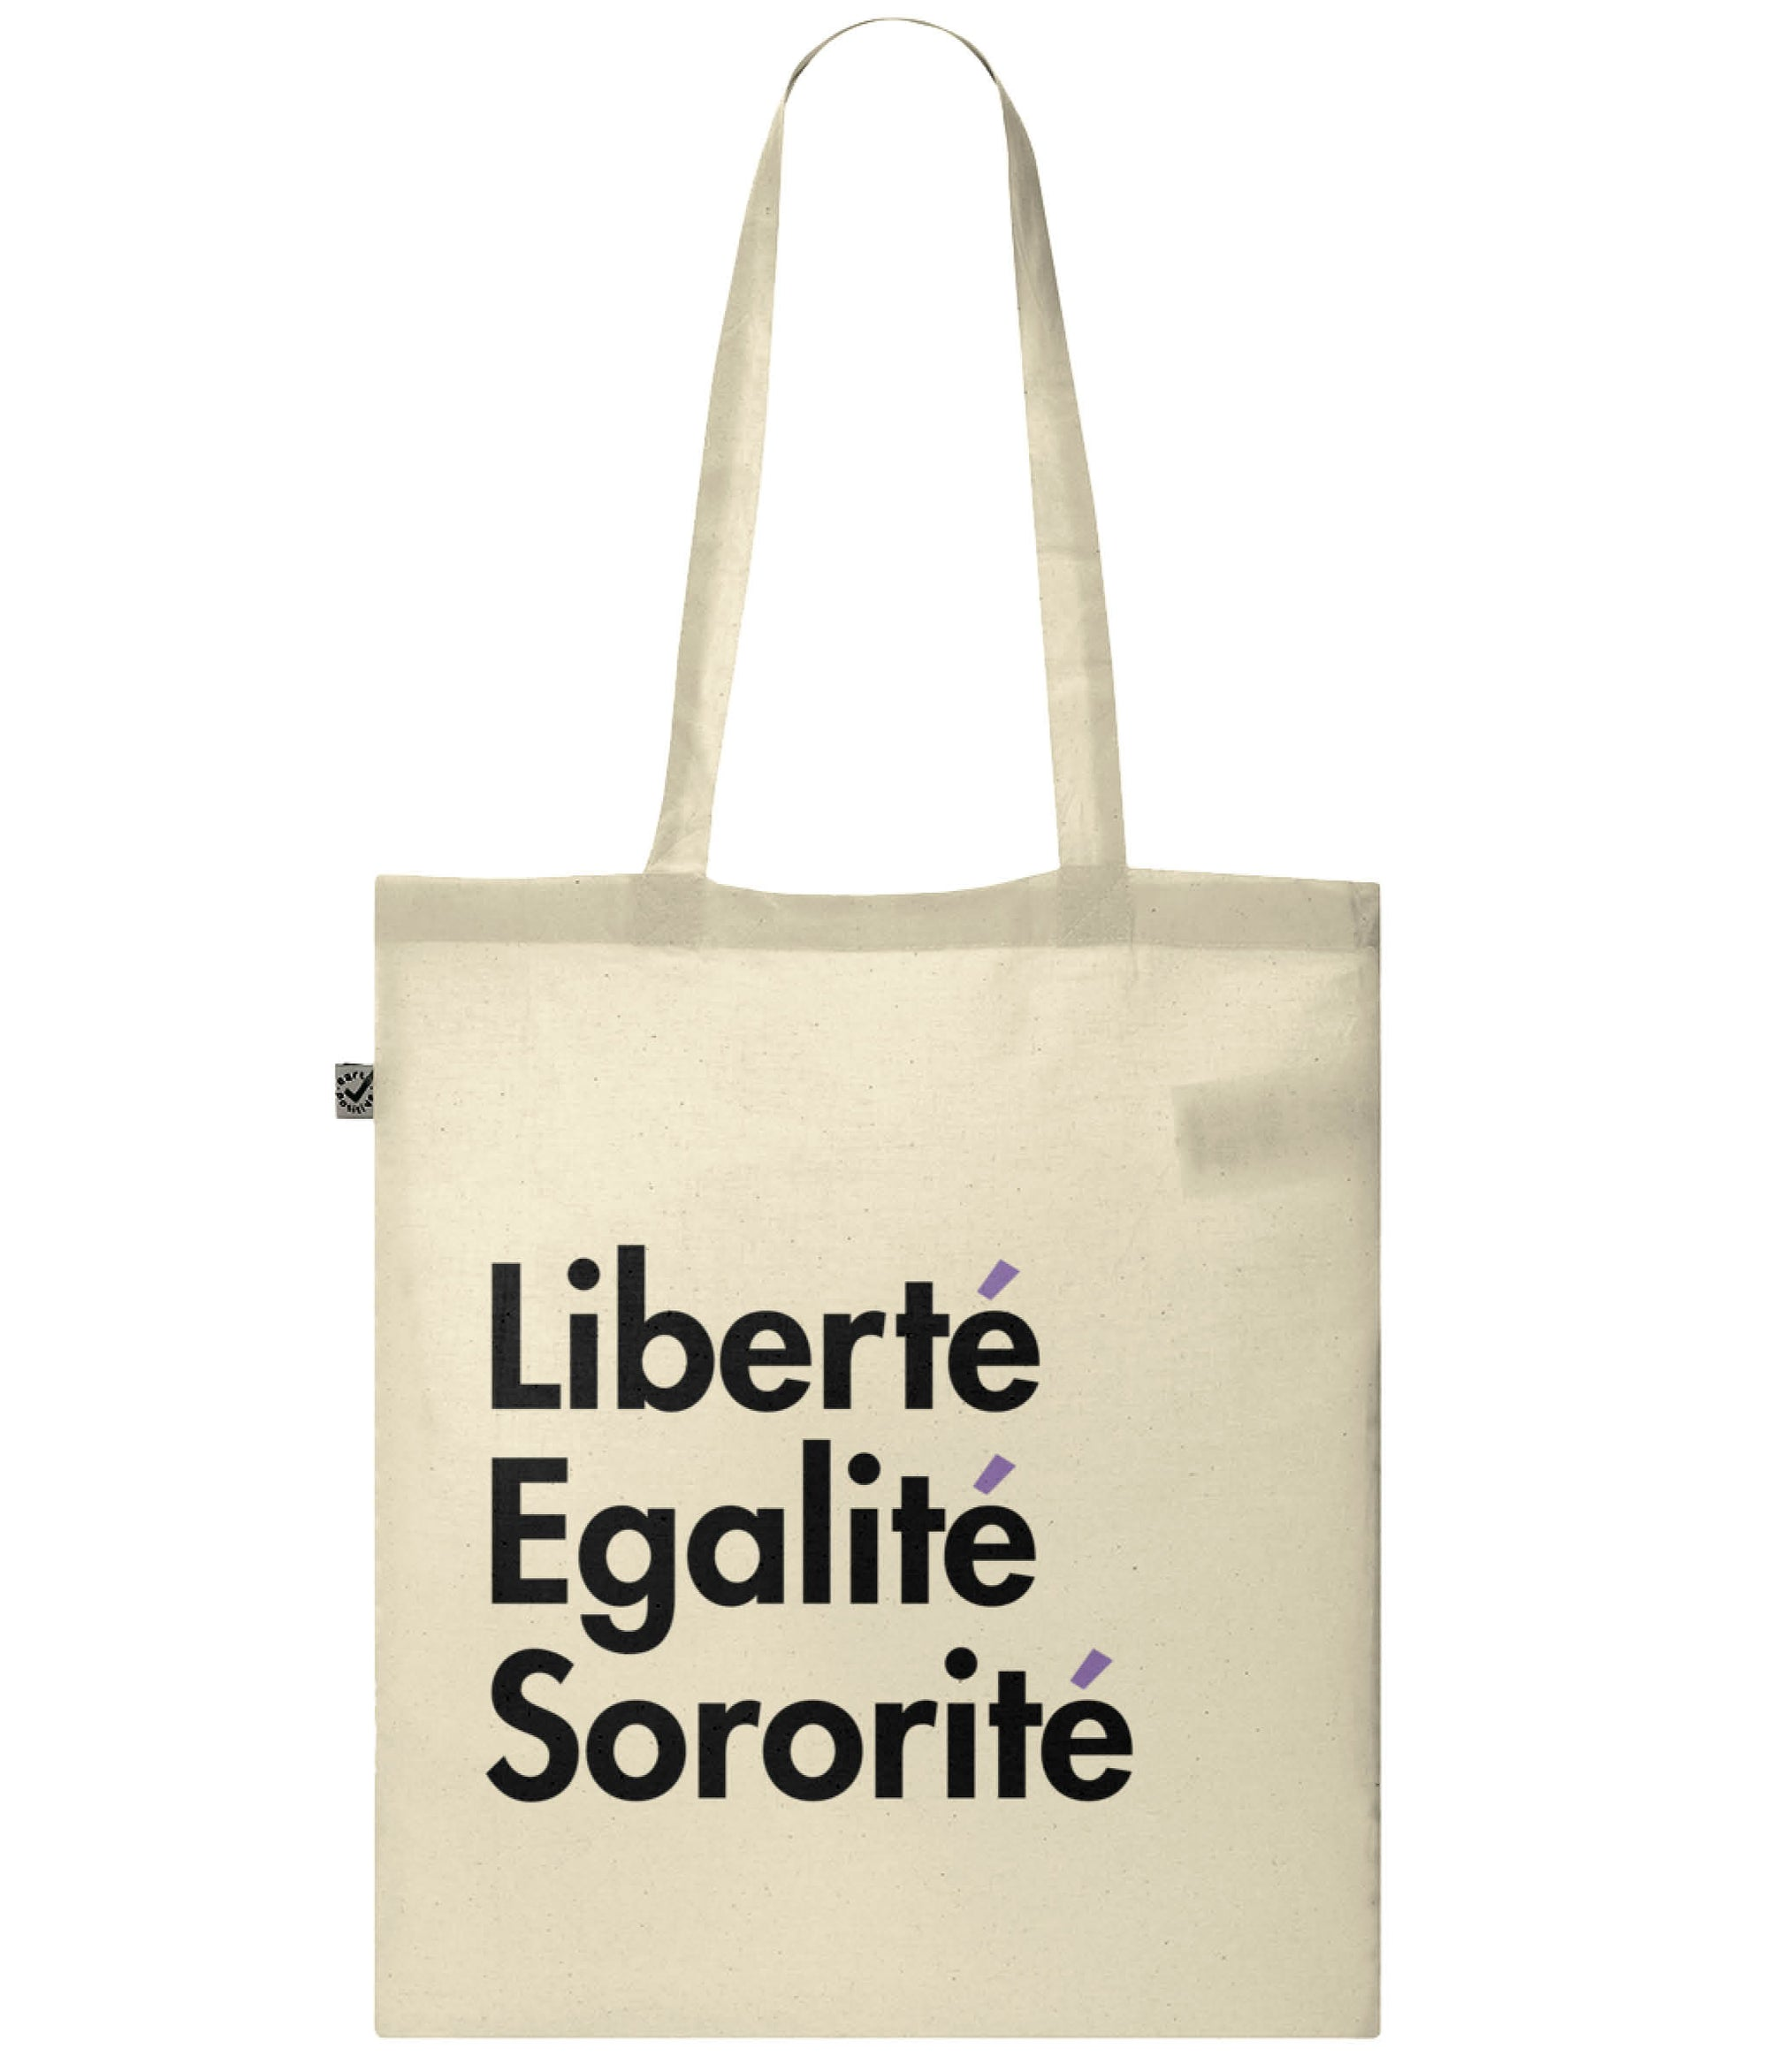 Liberté Egalité Sororité Organic Combed Cotton Tote Bag Natural